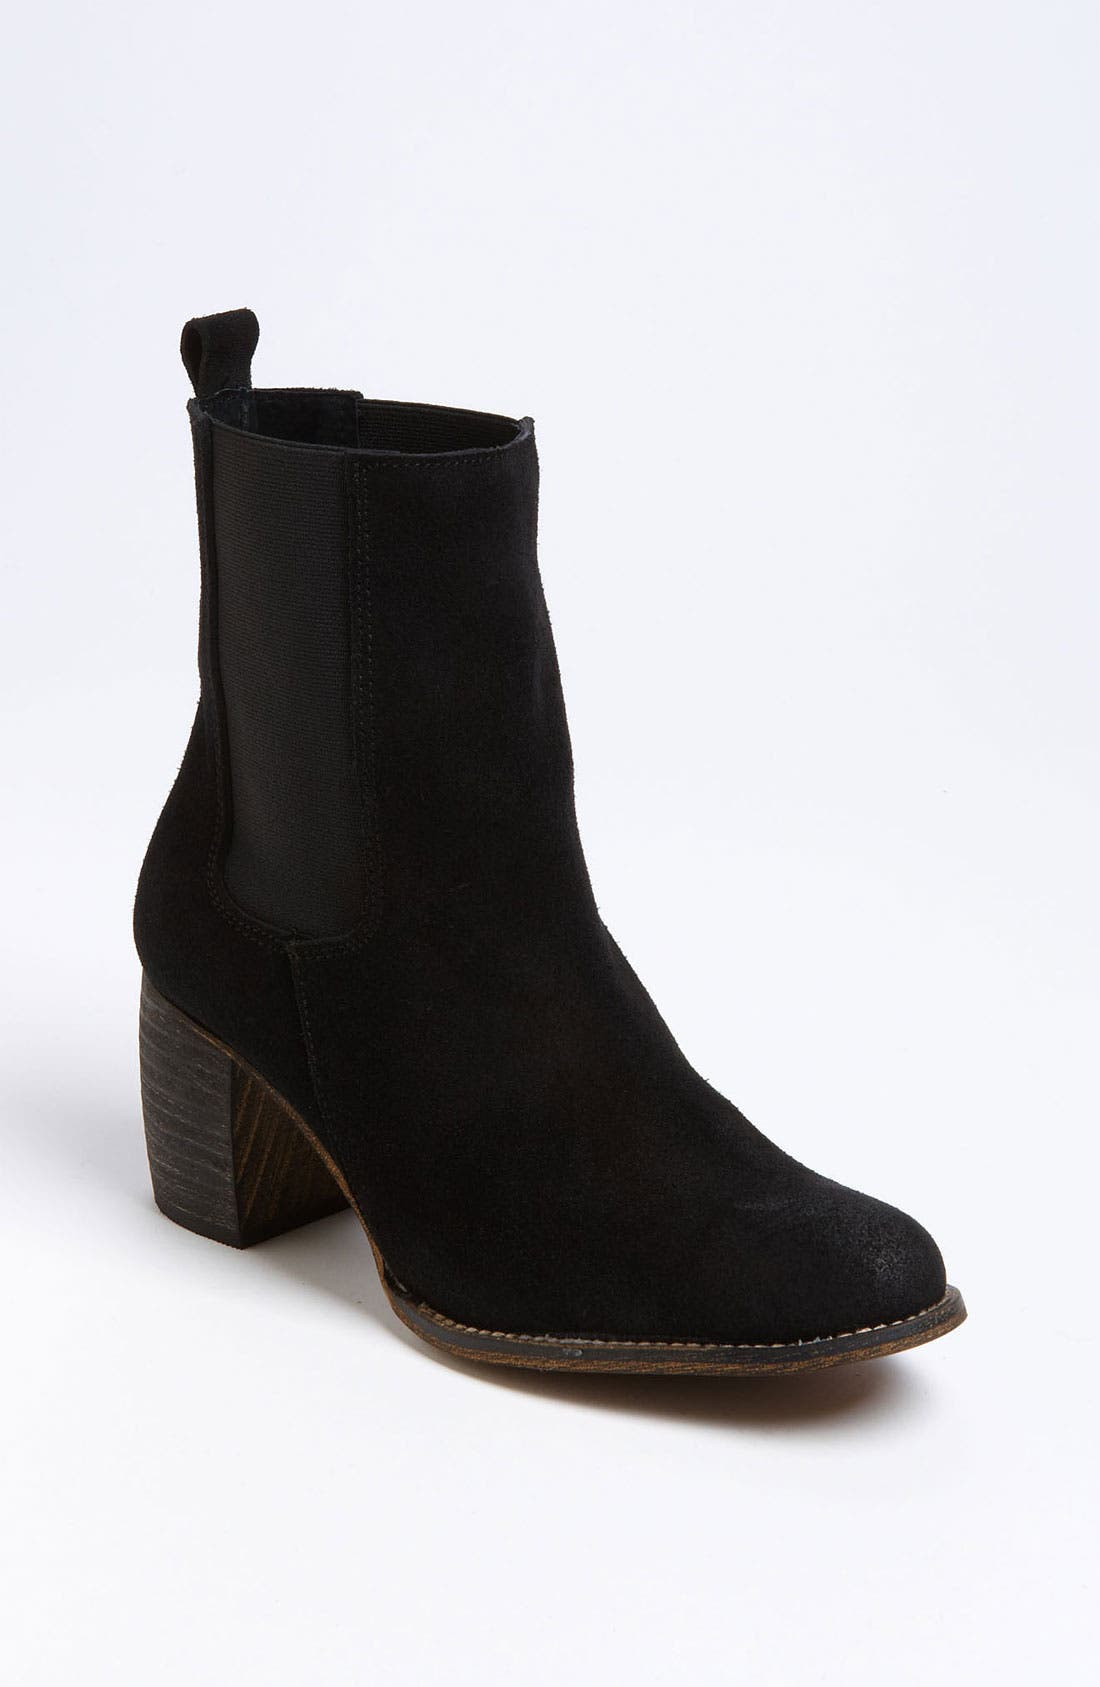 Alternate Image 1 Selected - Jeffrey Campbell 'Areas' Boot